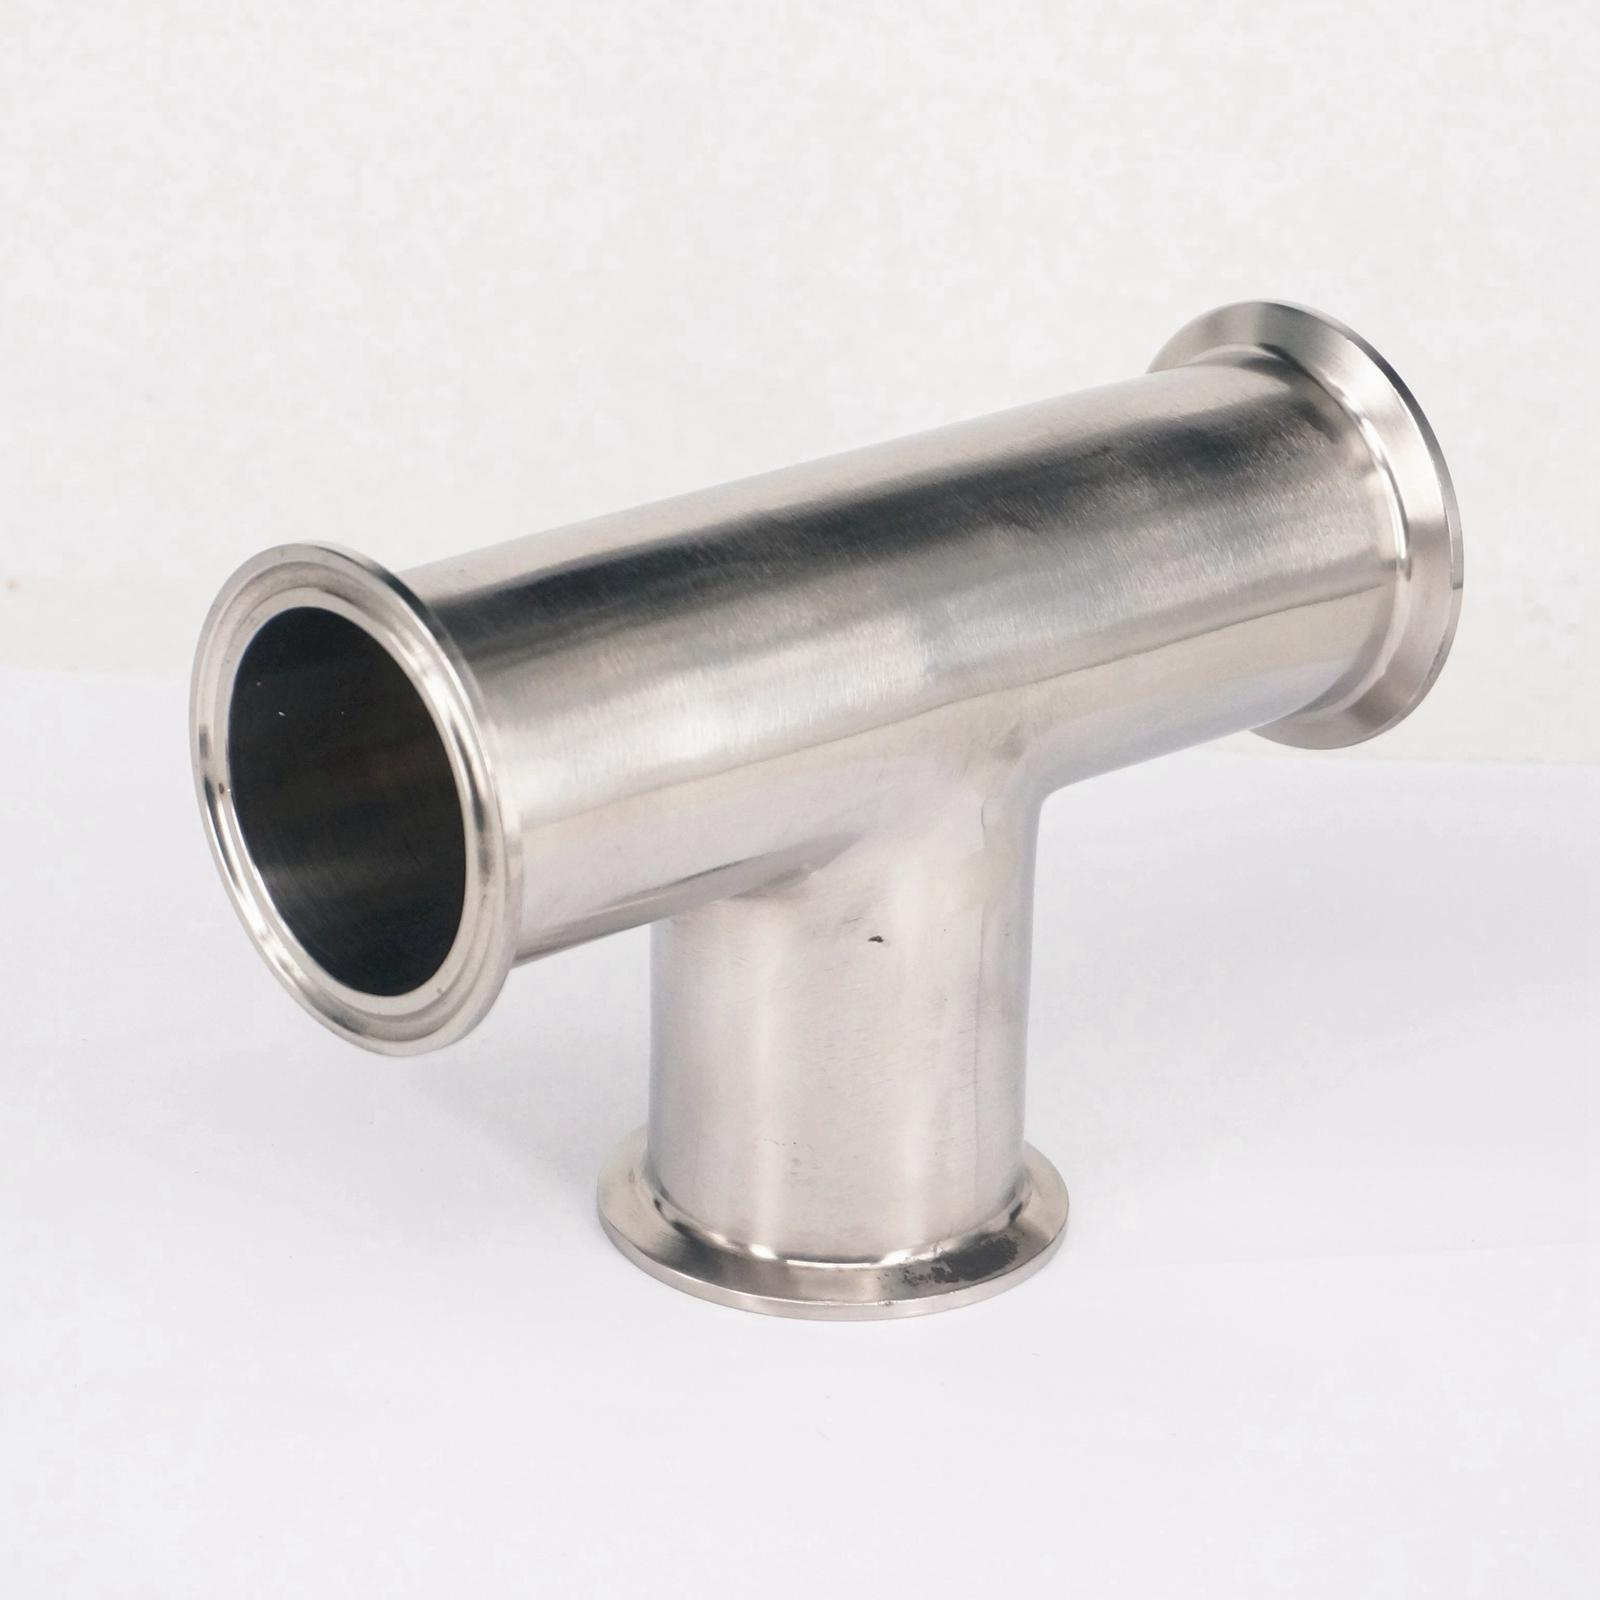 51mm 2 O/D 304 Stainless Steel Sanitary Ferrule Tee Connector Pipe Fitting Tri Clamp 1 4 1 npt female x 1 5 tri clamp 304 stainless steel sanitary pipe fitting connector for homebrew ferrule od 50 5mm